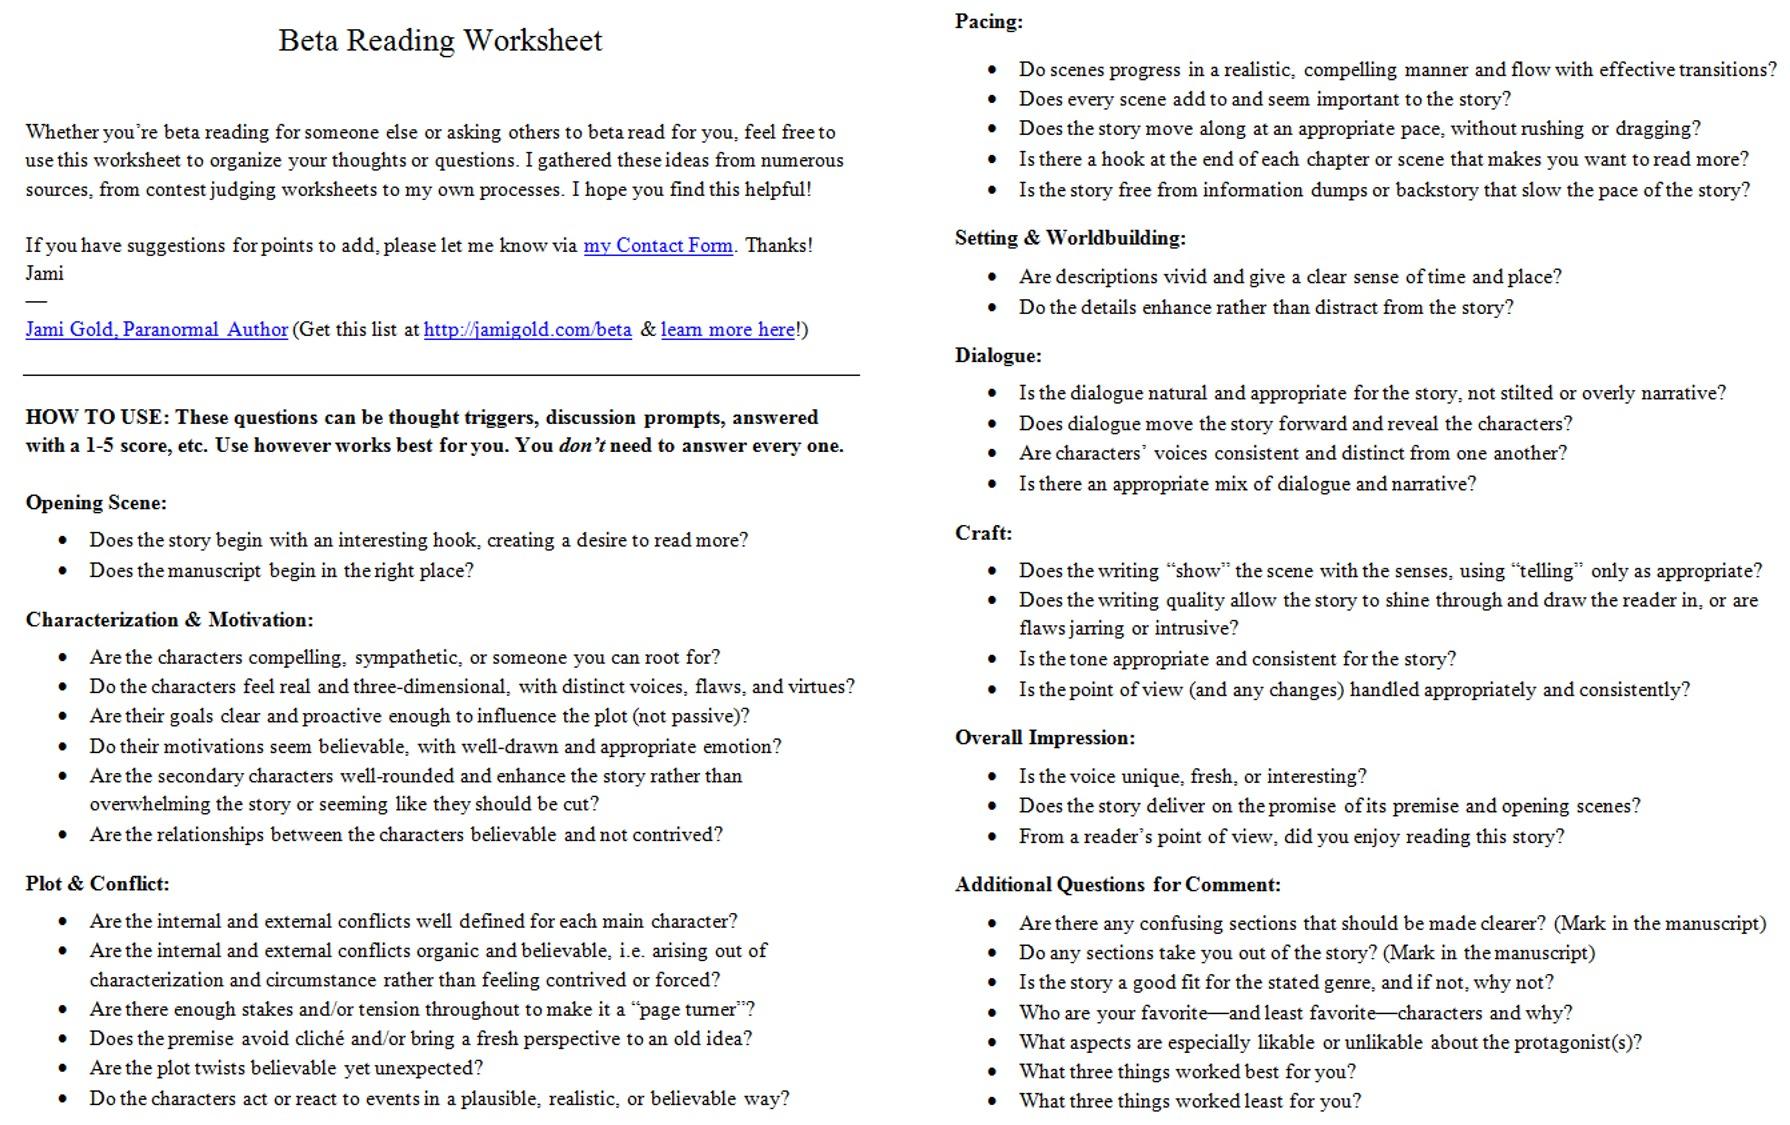 Weirdmailus  Unique Worksheets For Writers  Jami Gold Paranormal Author With Marvelous Screen Shot Of The Twopage Beta Reading Worksheet With Alluring Language Arts Worksheets First Grade Also Rd Grade Sentence Correction Worksheets In Addition Teddy Bear Worksheets And Corporal And Spiritual Works Of Mercy Worksheet As Well As Factoring Algebraic Expressions Worksheet Additionally The Help Worksheet From Jamigoldcom With Weirdmailus  Marvelous Worksheets For Writers  Jami Gold Paranormal Author With Alluring Screen Shot Of The Twopage Beta Reading Worksheet And Unique Language Arts Worksheets First Grade Also Rd Grade Sentence Correction Worksheets In Addition Teddy Bear Worksheets From Jamigoldcom